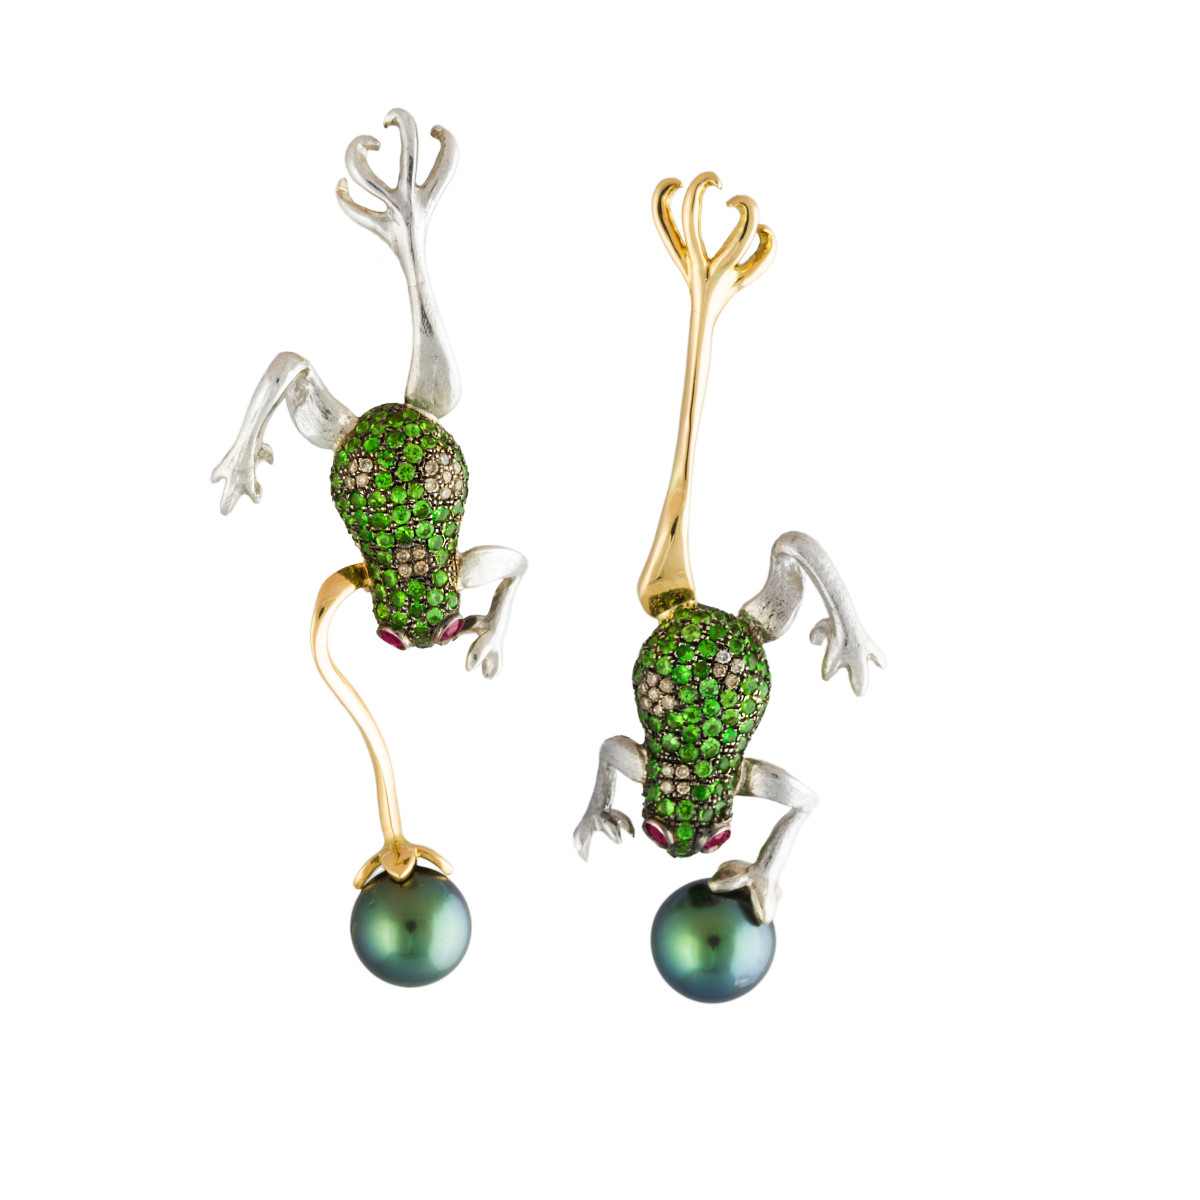 FROGS, earrings, Couture, The Garden of Earthly Delights collection, Gaelle Khouri, £2,414